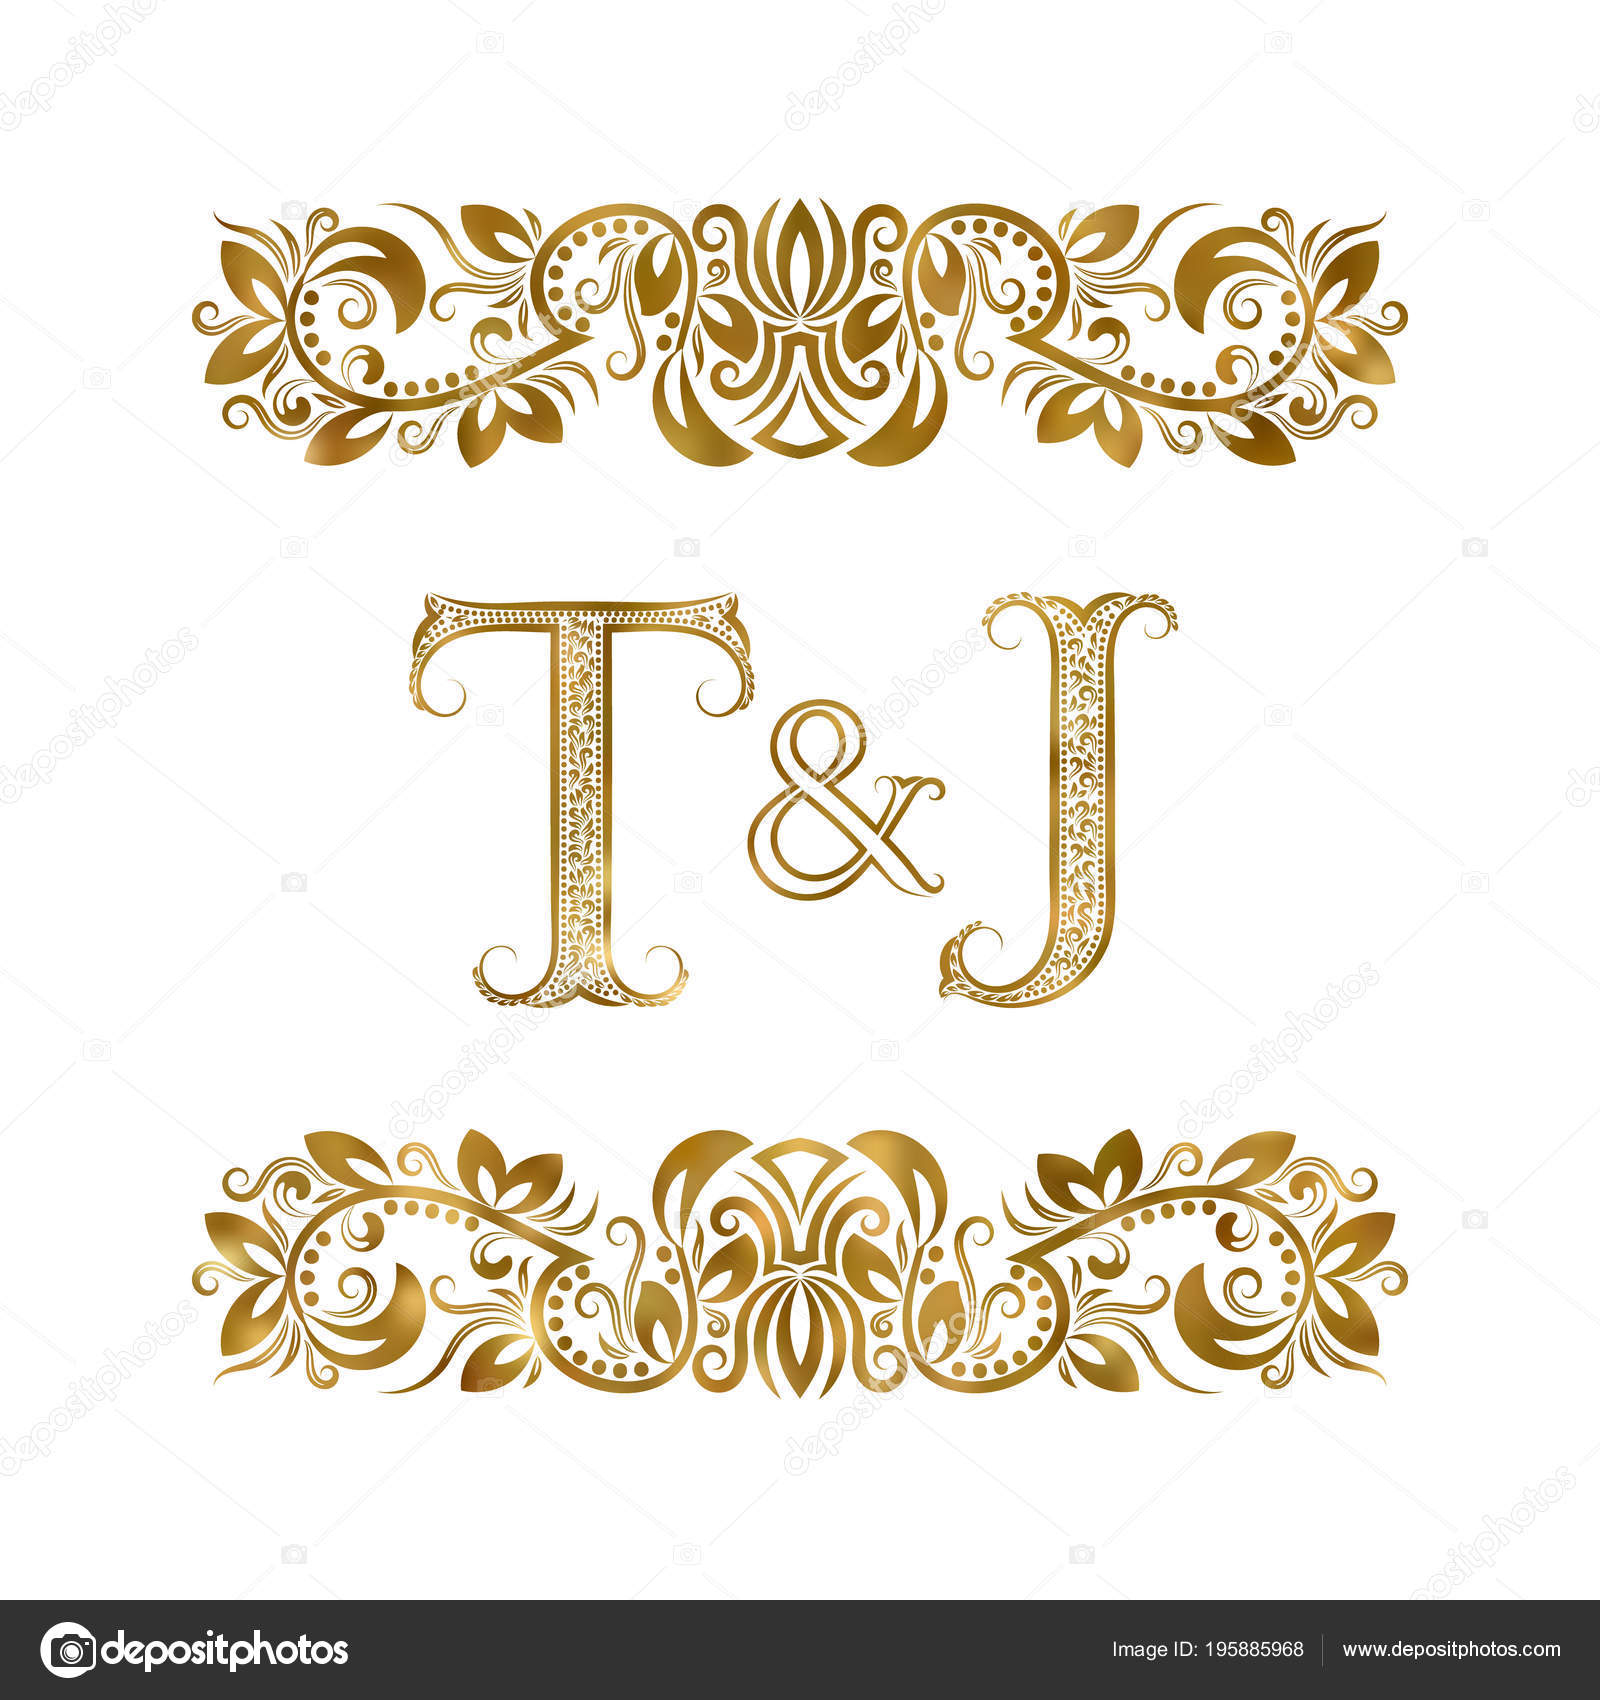 T And J Designs.Vintage Initials Logo Symbol Letters Surrounded Ornamental